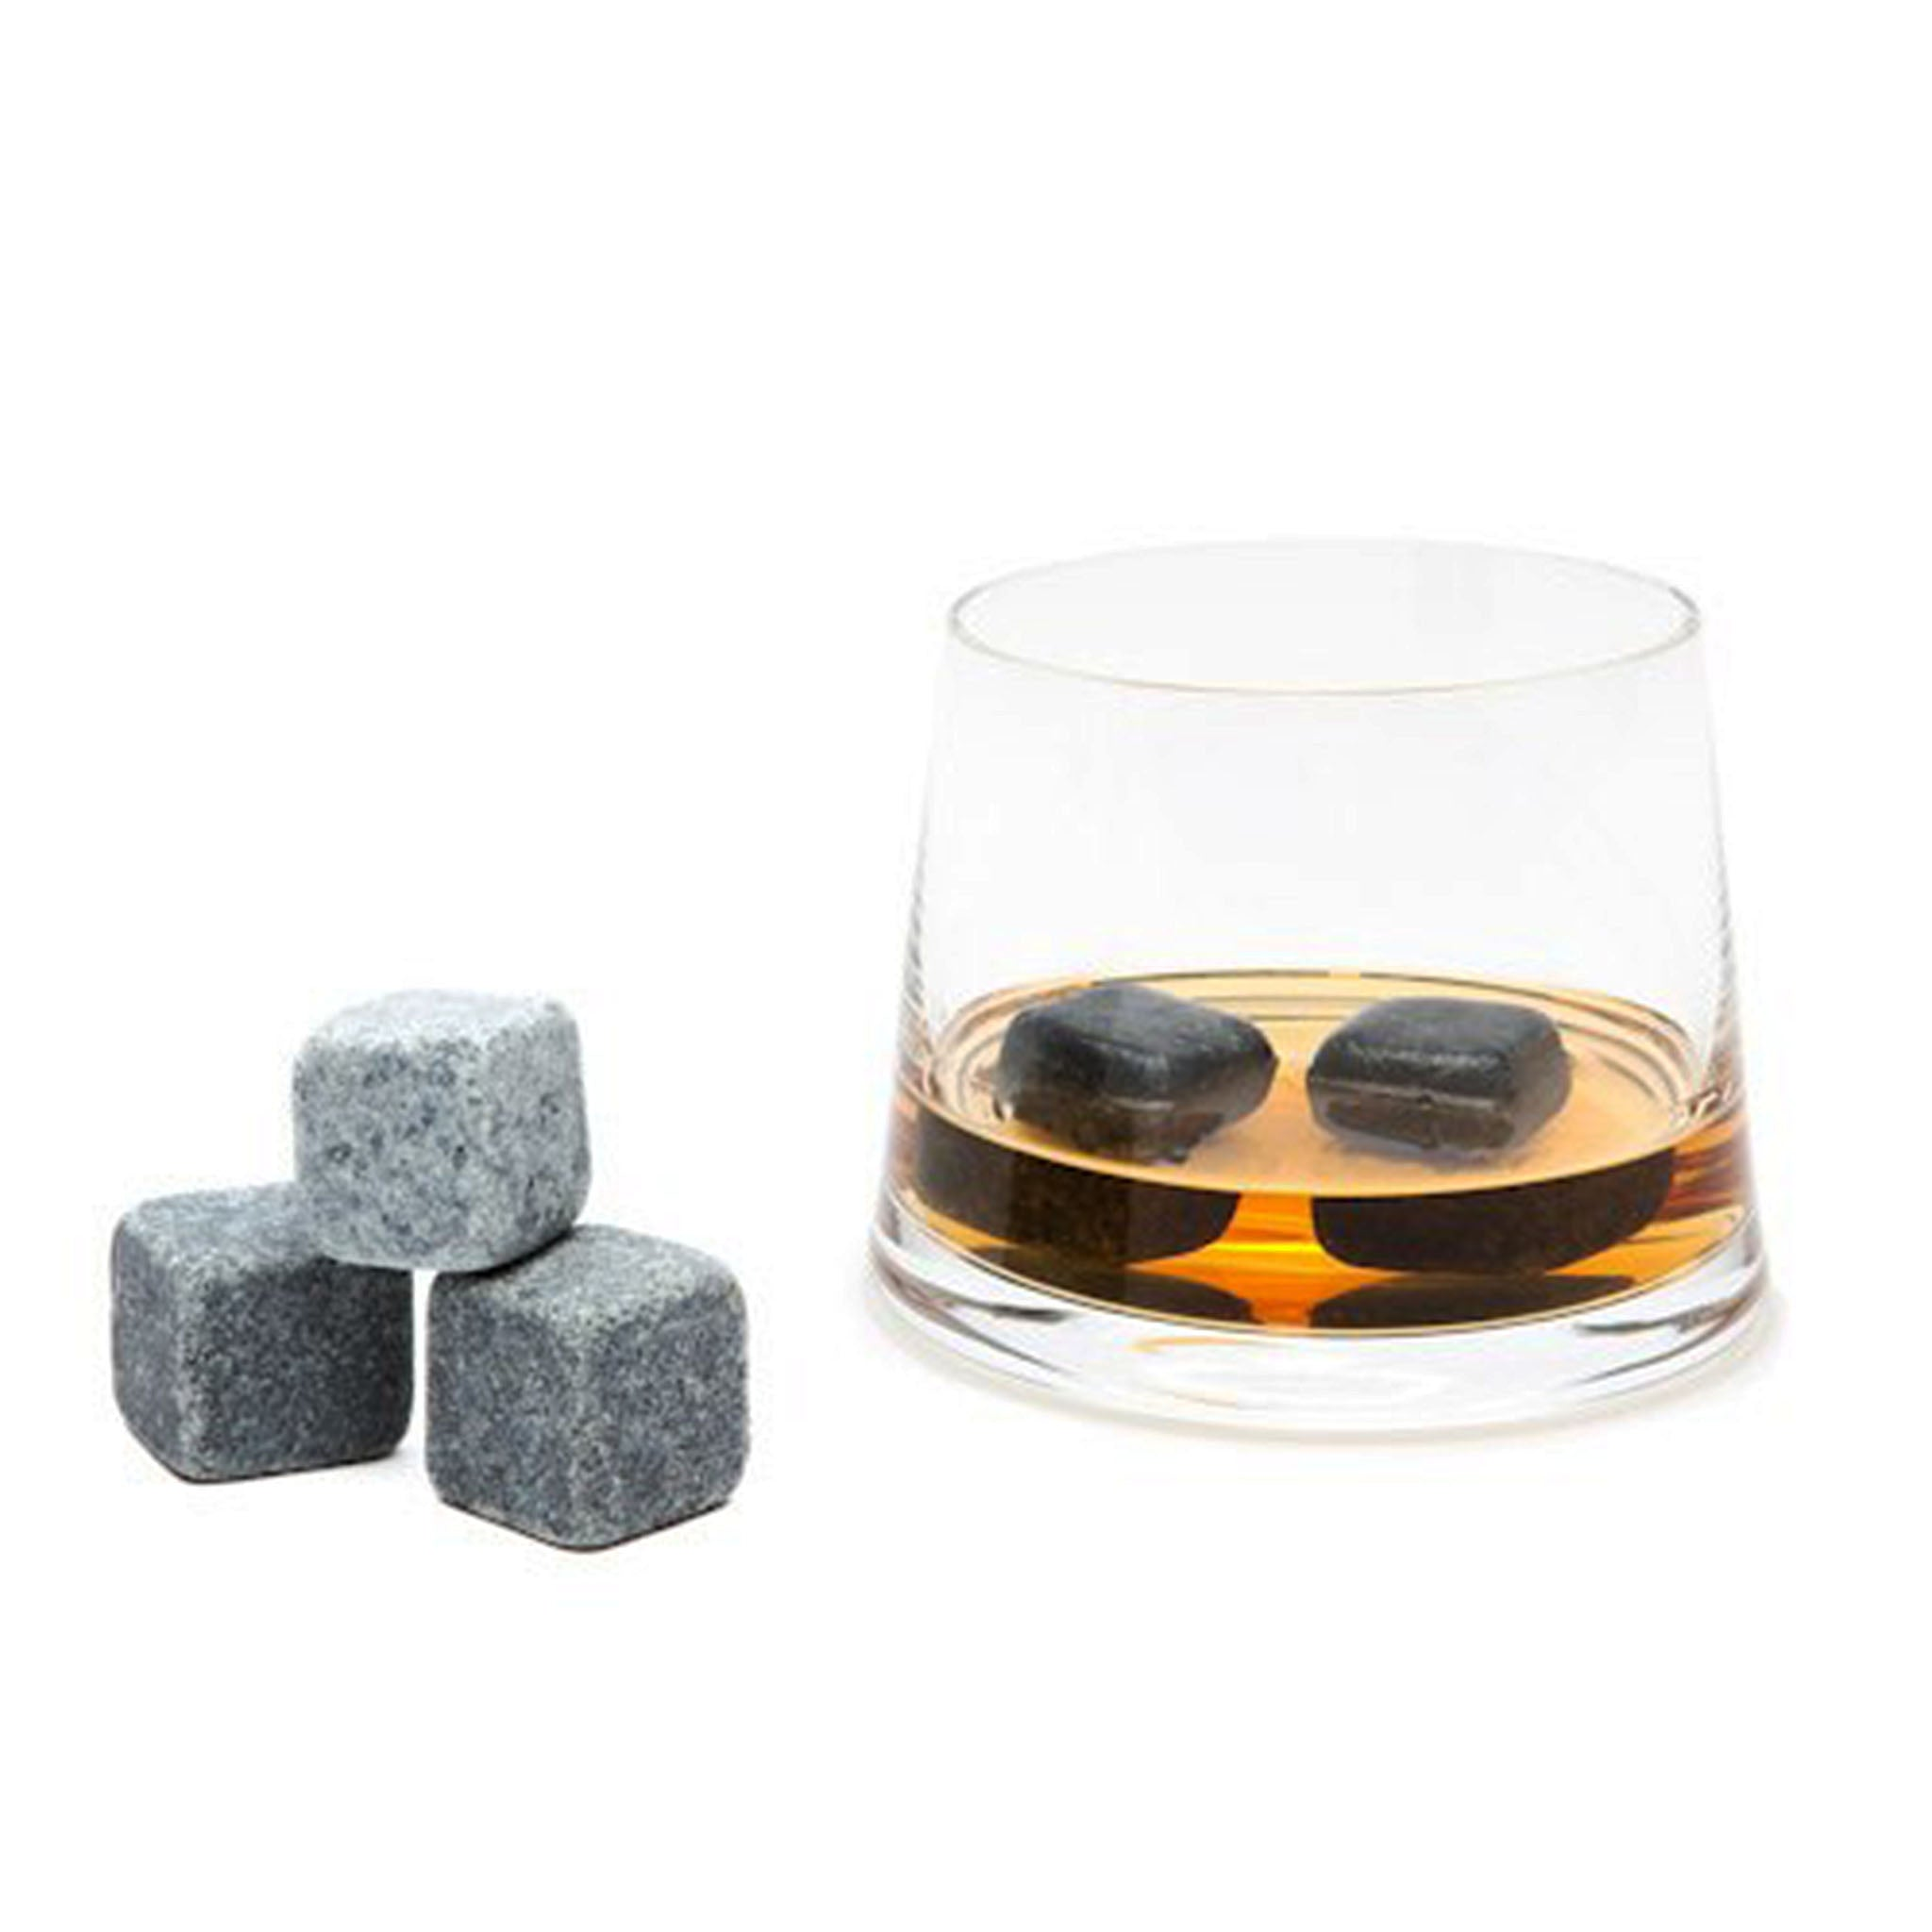 Whisky Stones by Teroforma. Soapstone cubes that cool your drink without watering it down.